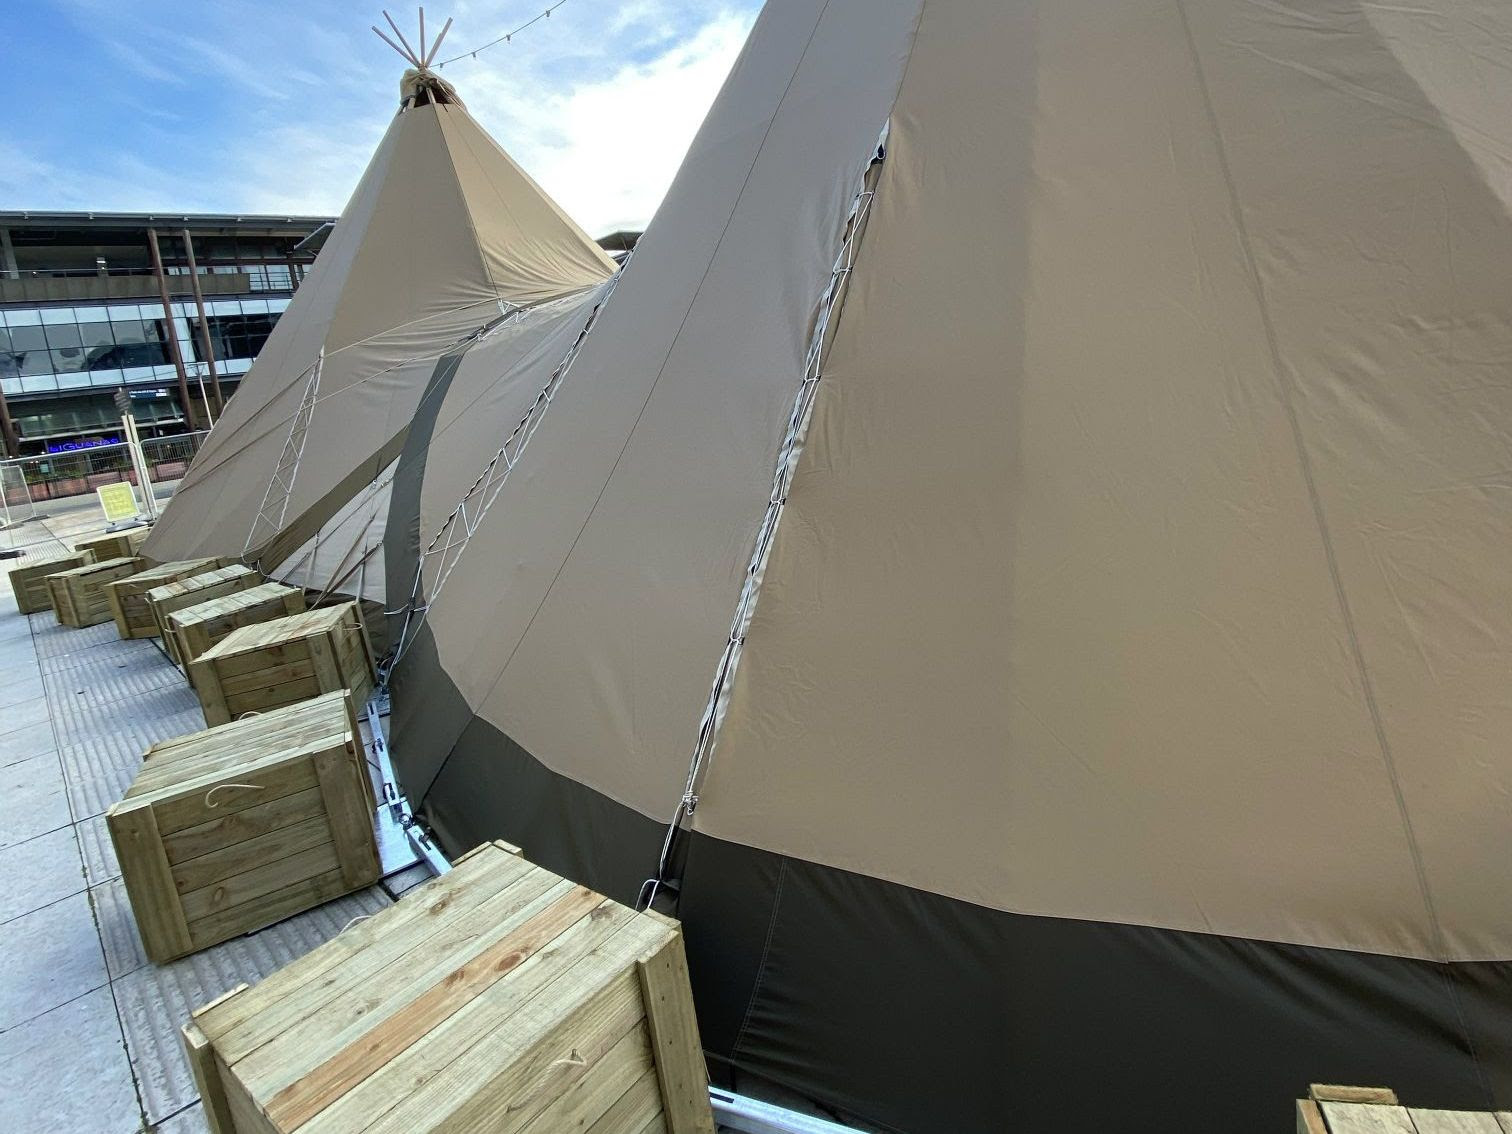 tipi using hard standing fixtures